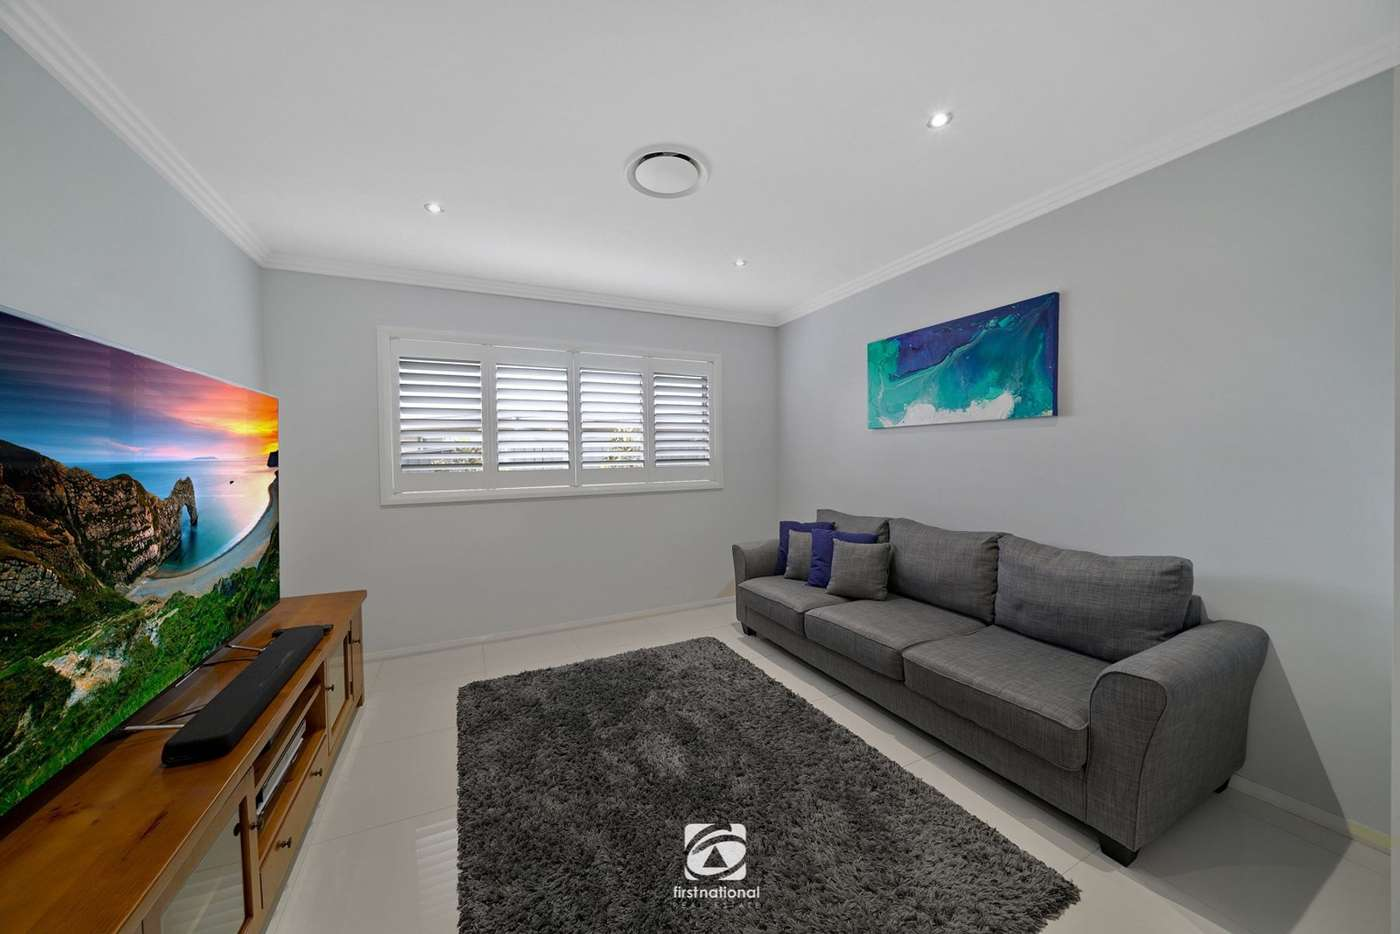 Sixth view of Homely house listing, 5 Heber Close, Cobbitty NSW 2570